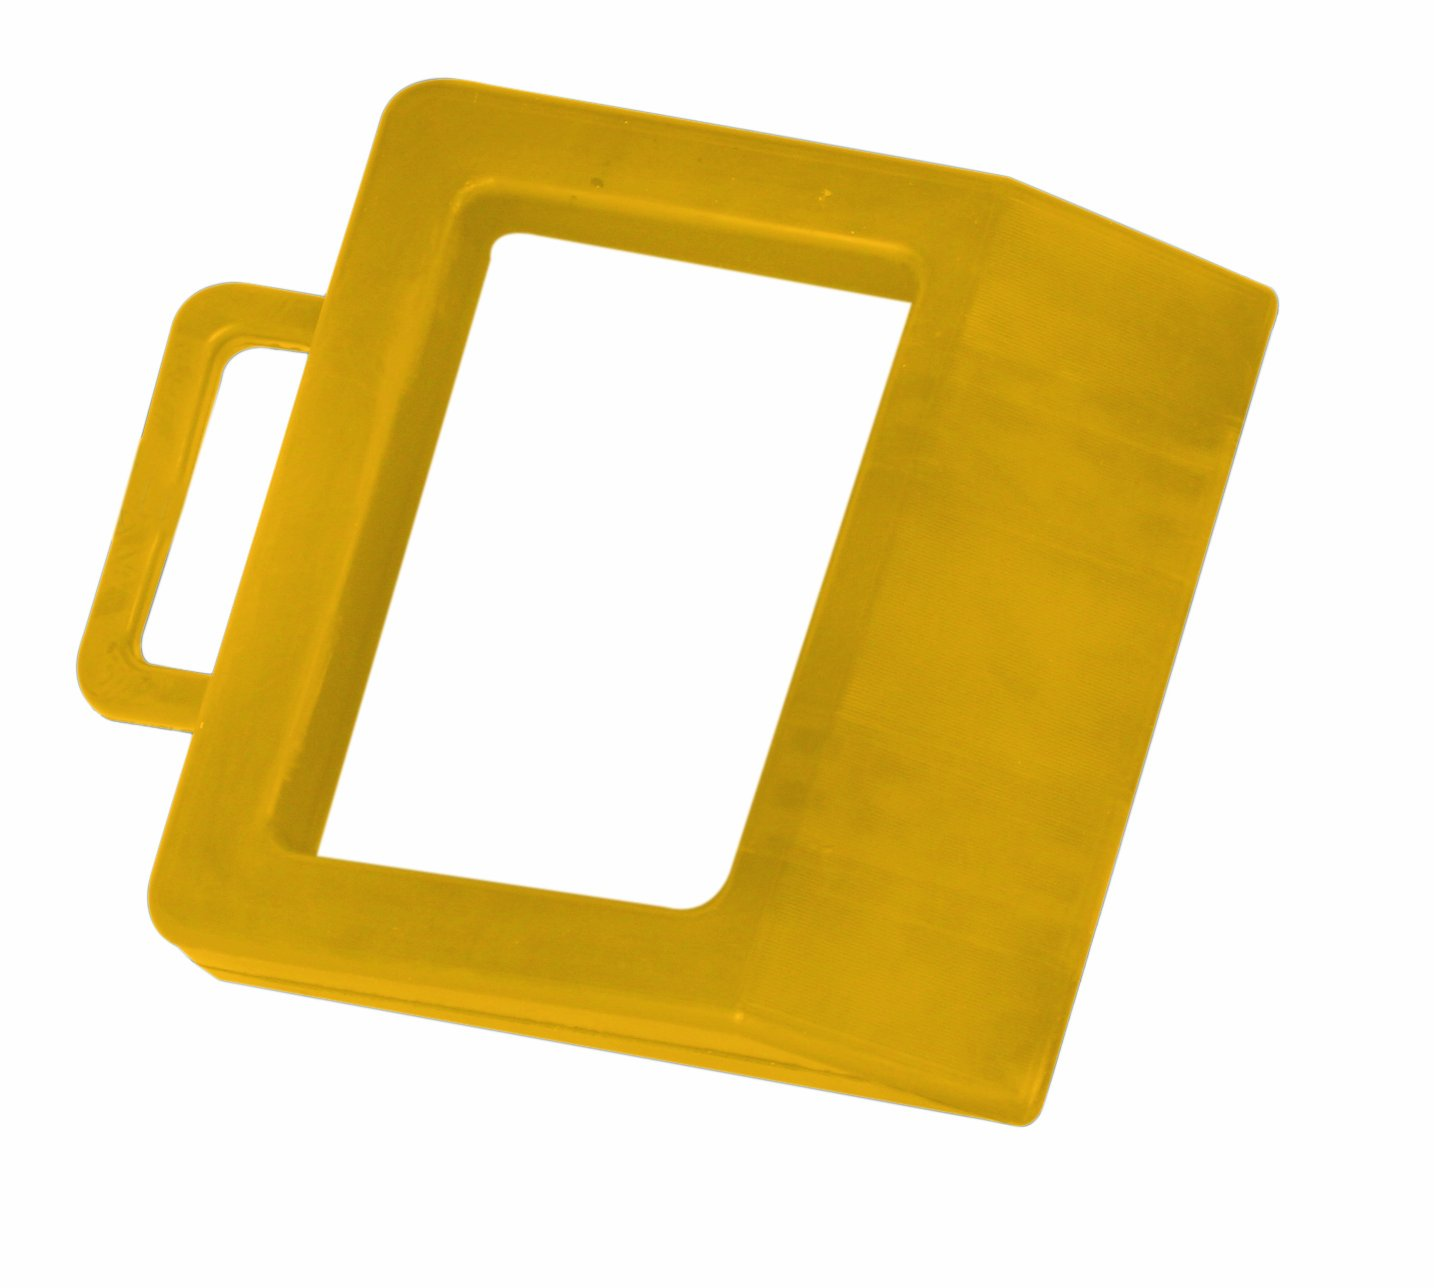 Durable Pallet Foot Sleeve 145 x 75mm Yellow 172404 Pack of 50 Pieces